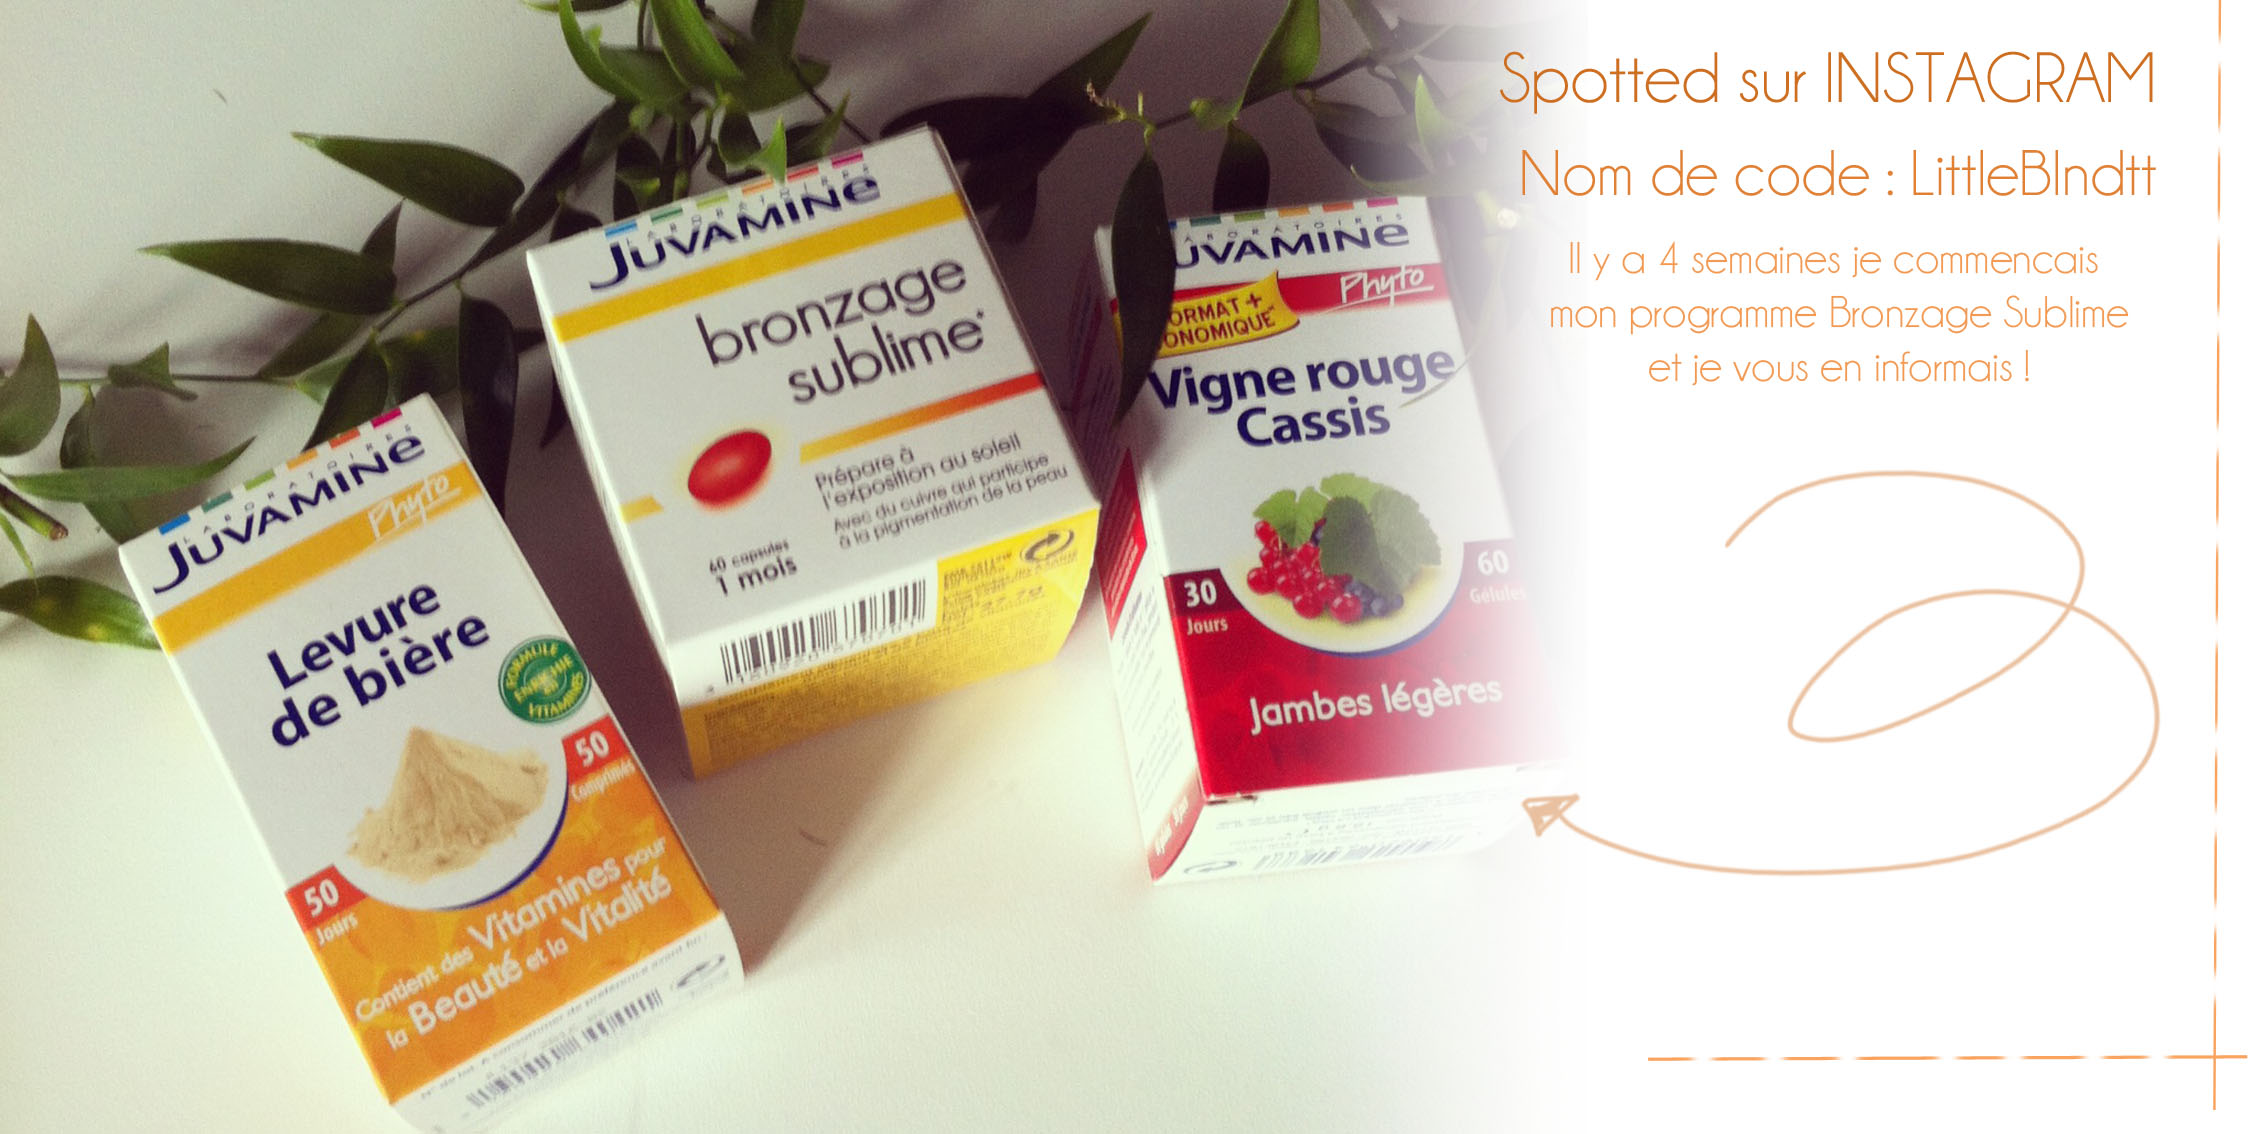 ALITTLEB_BLOG_BEAUTE_JUVAMINE_COMPLEMENTS_ALIMENTAIRES_REVUE_ZOOM_INSTAGRAM